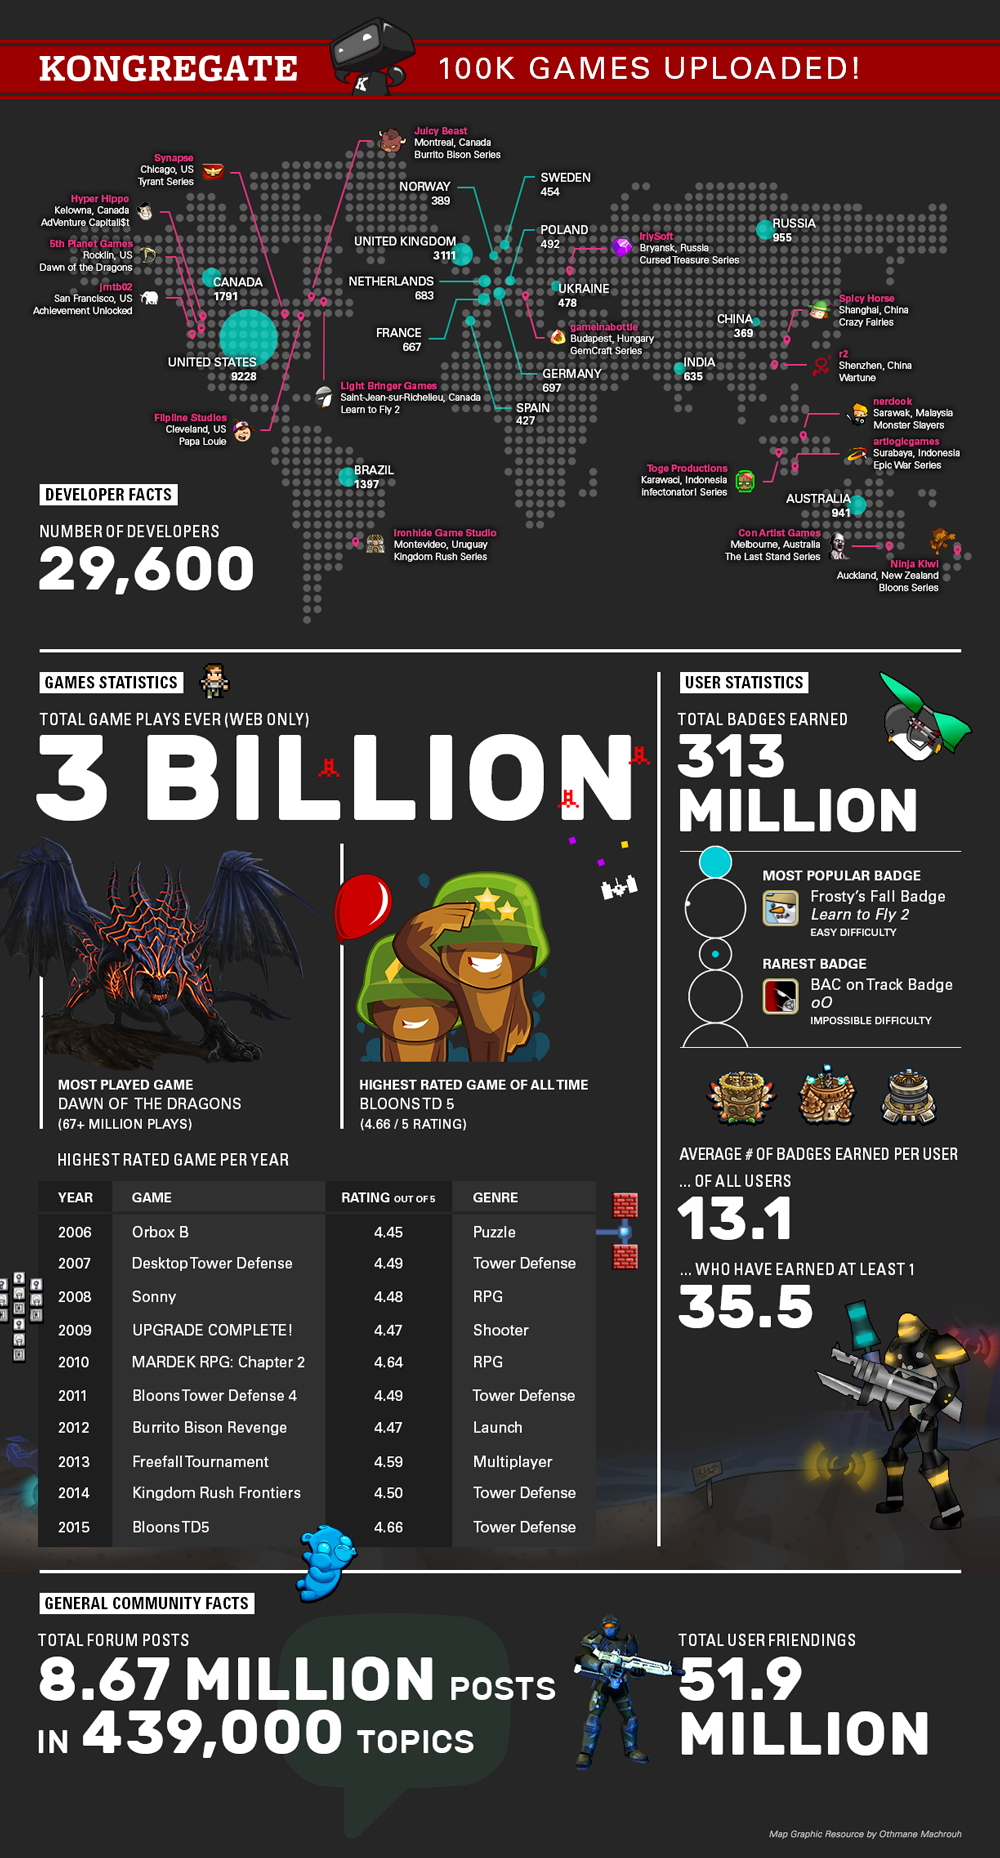 Kongregate 100,000 Games Infographic